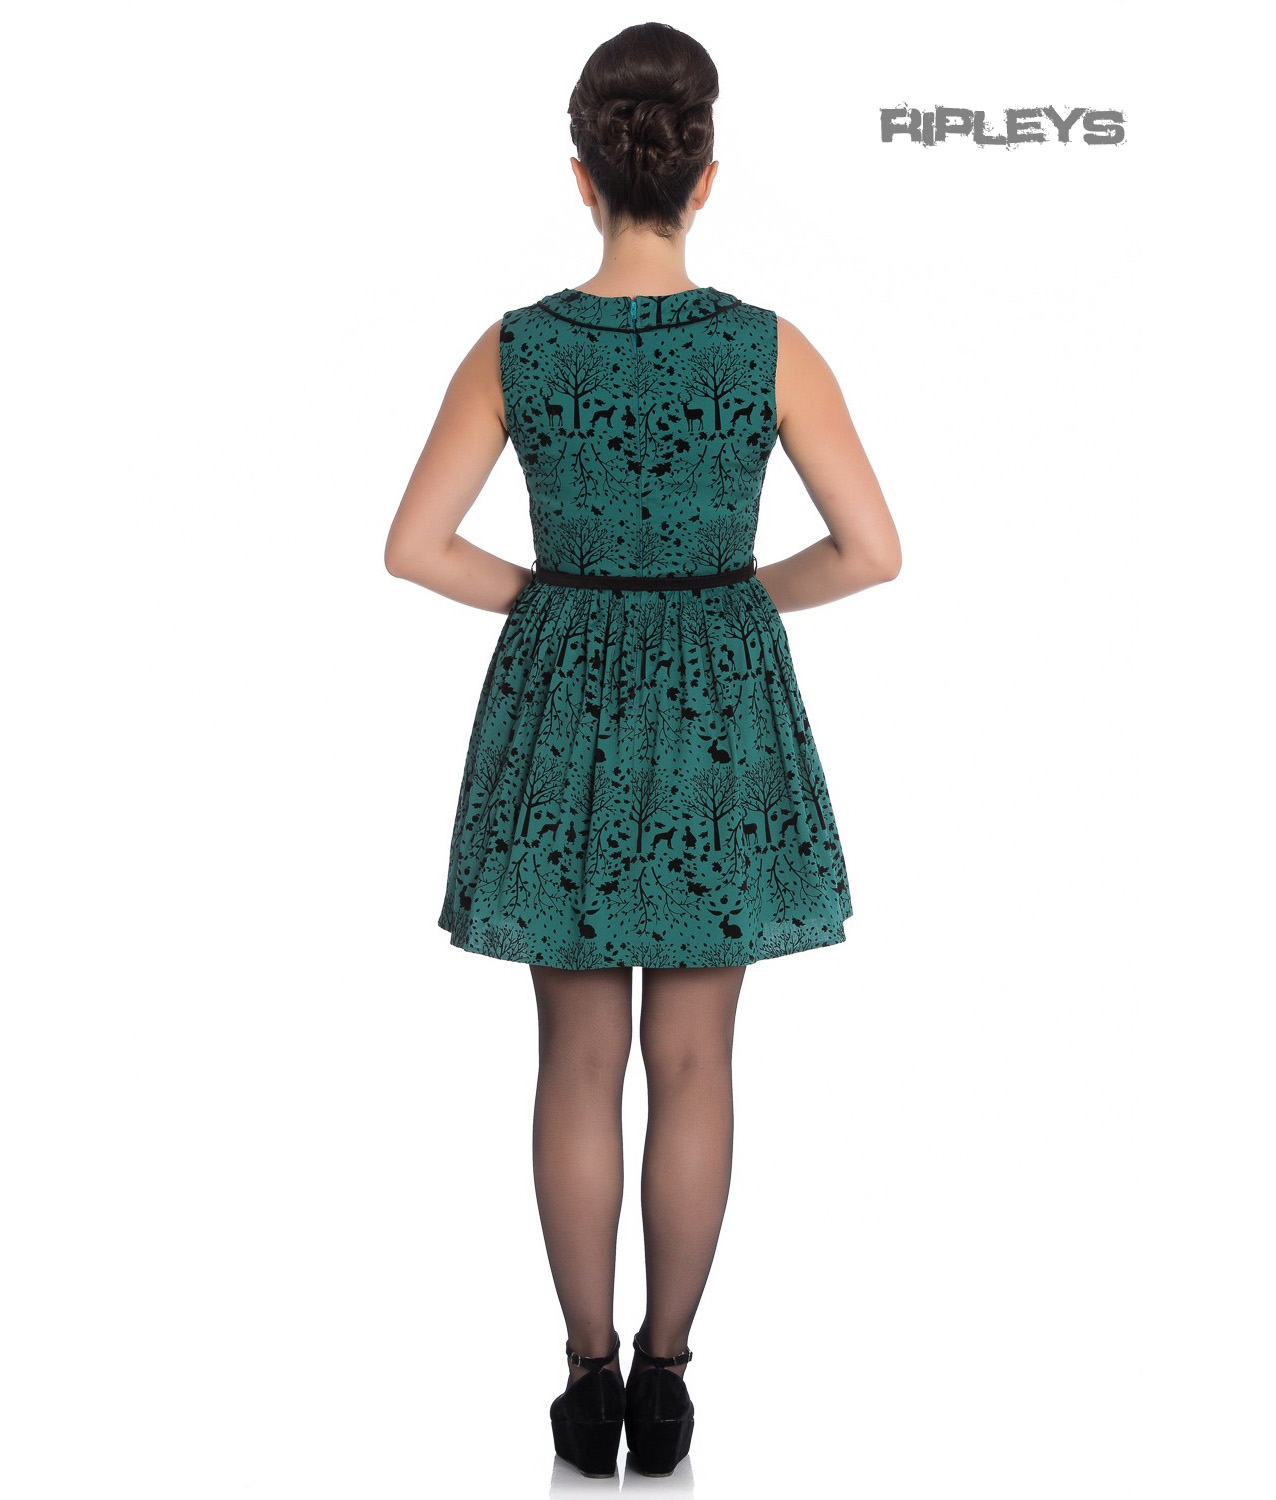 Hell-Bunny-50s-Mini-Skater-Dress-Woodland-Trees-SHERWOOD-Dark-Green-All-Sizes thumbnail 12